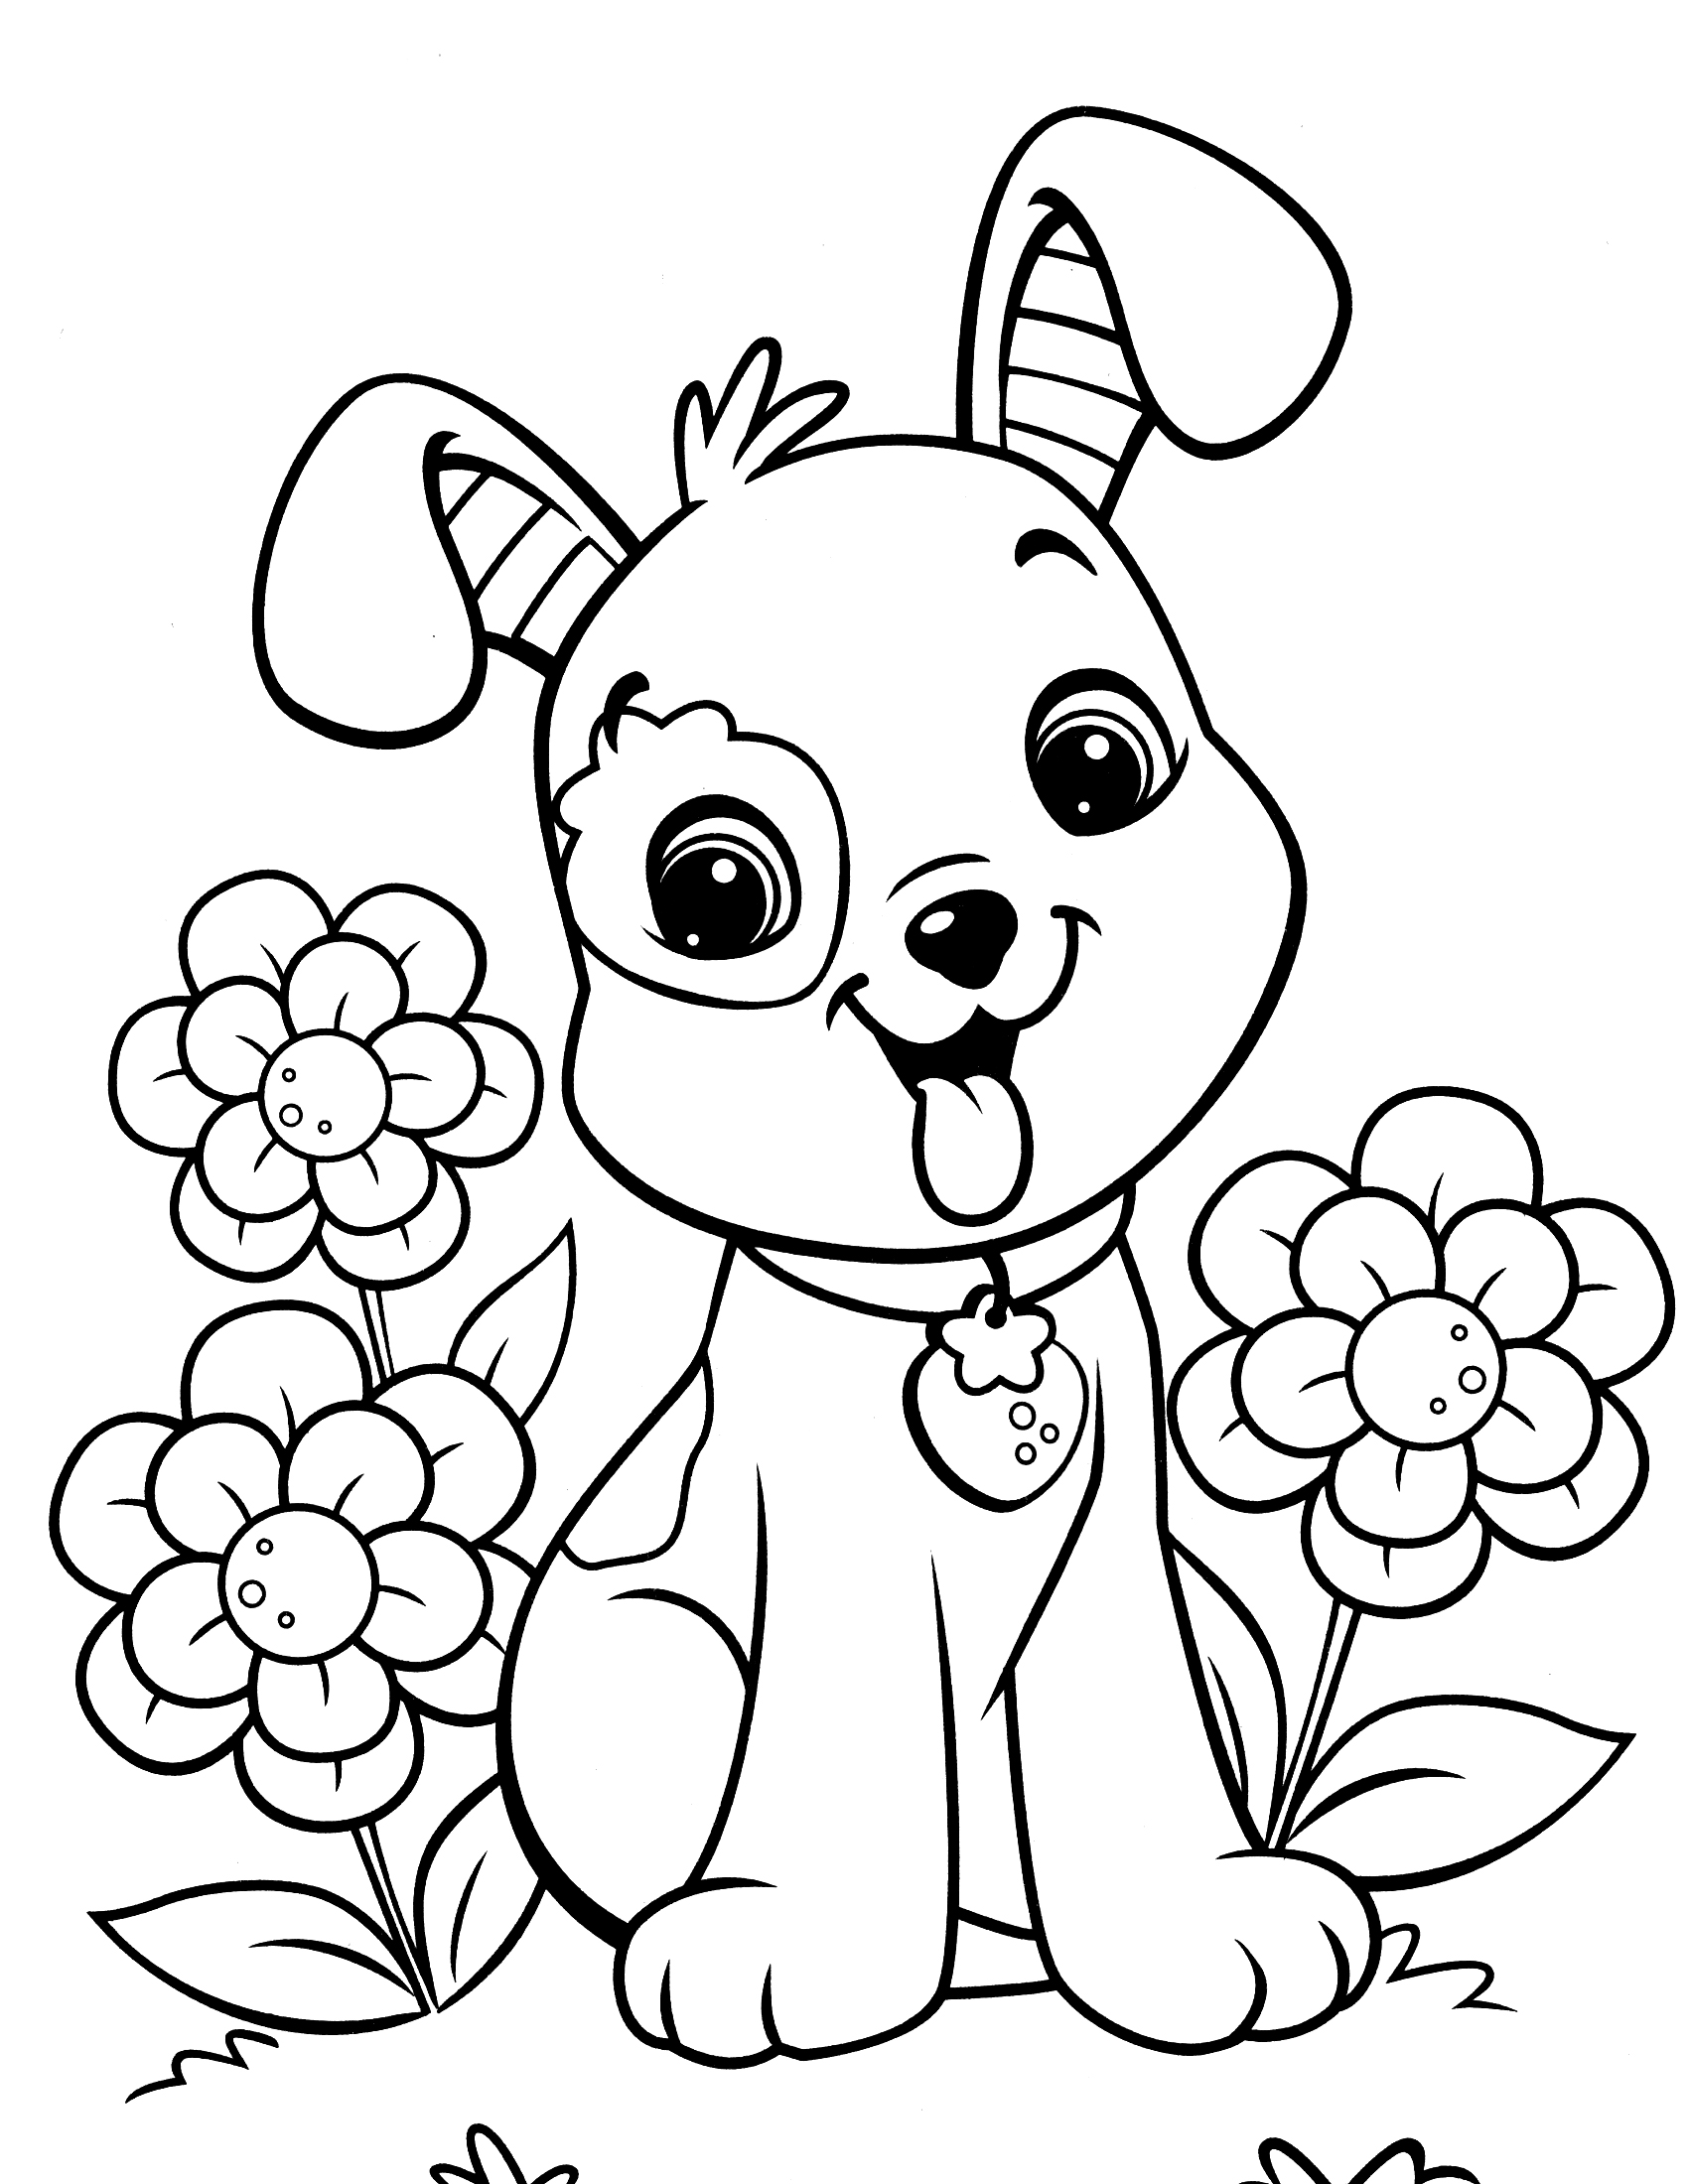 kawaii dog coloring pages slime coloring pages at getcoloringscom free printable pages coloring kawaii dog